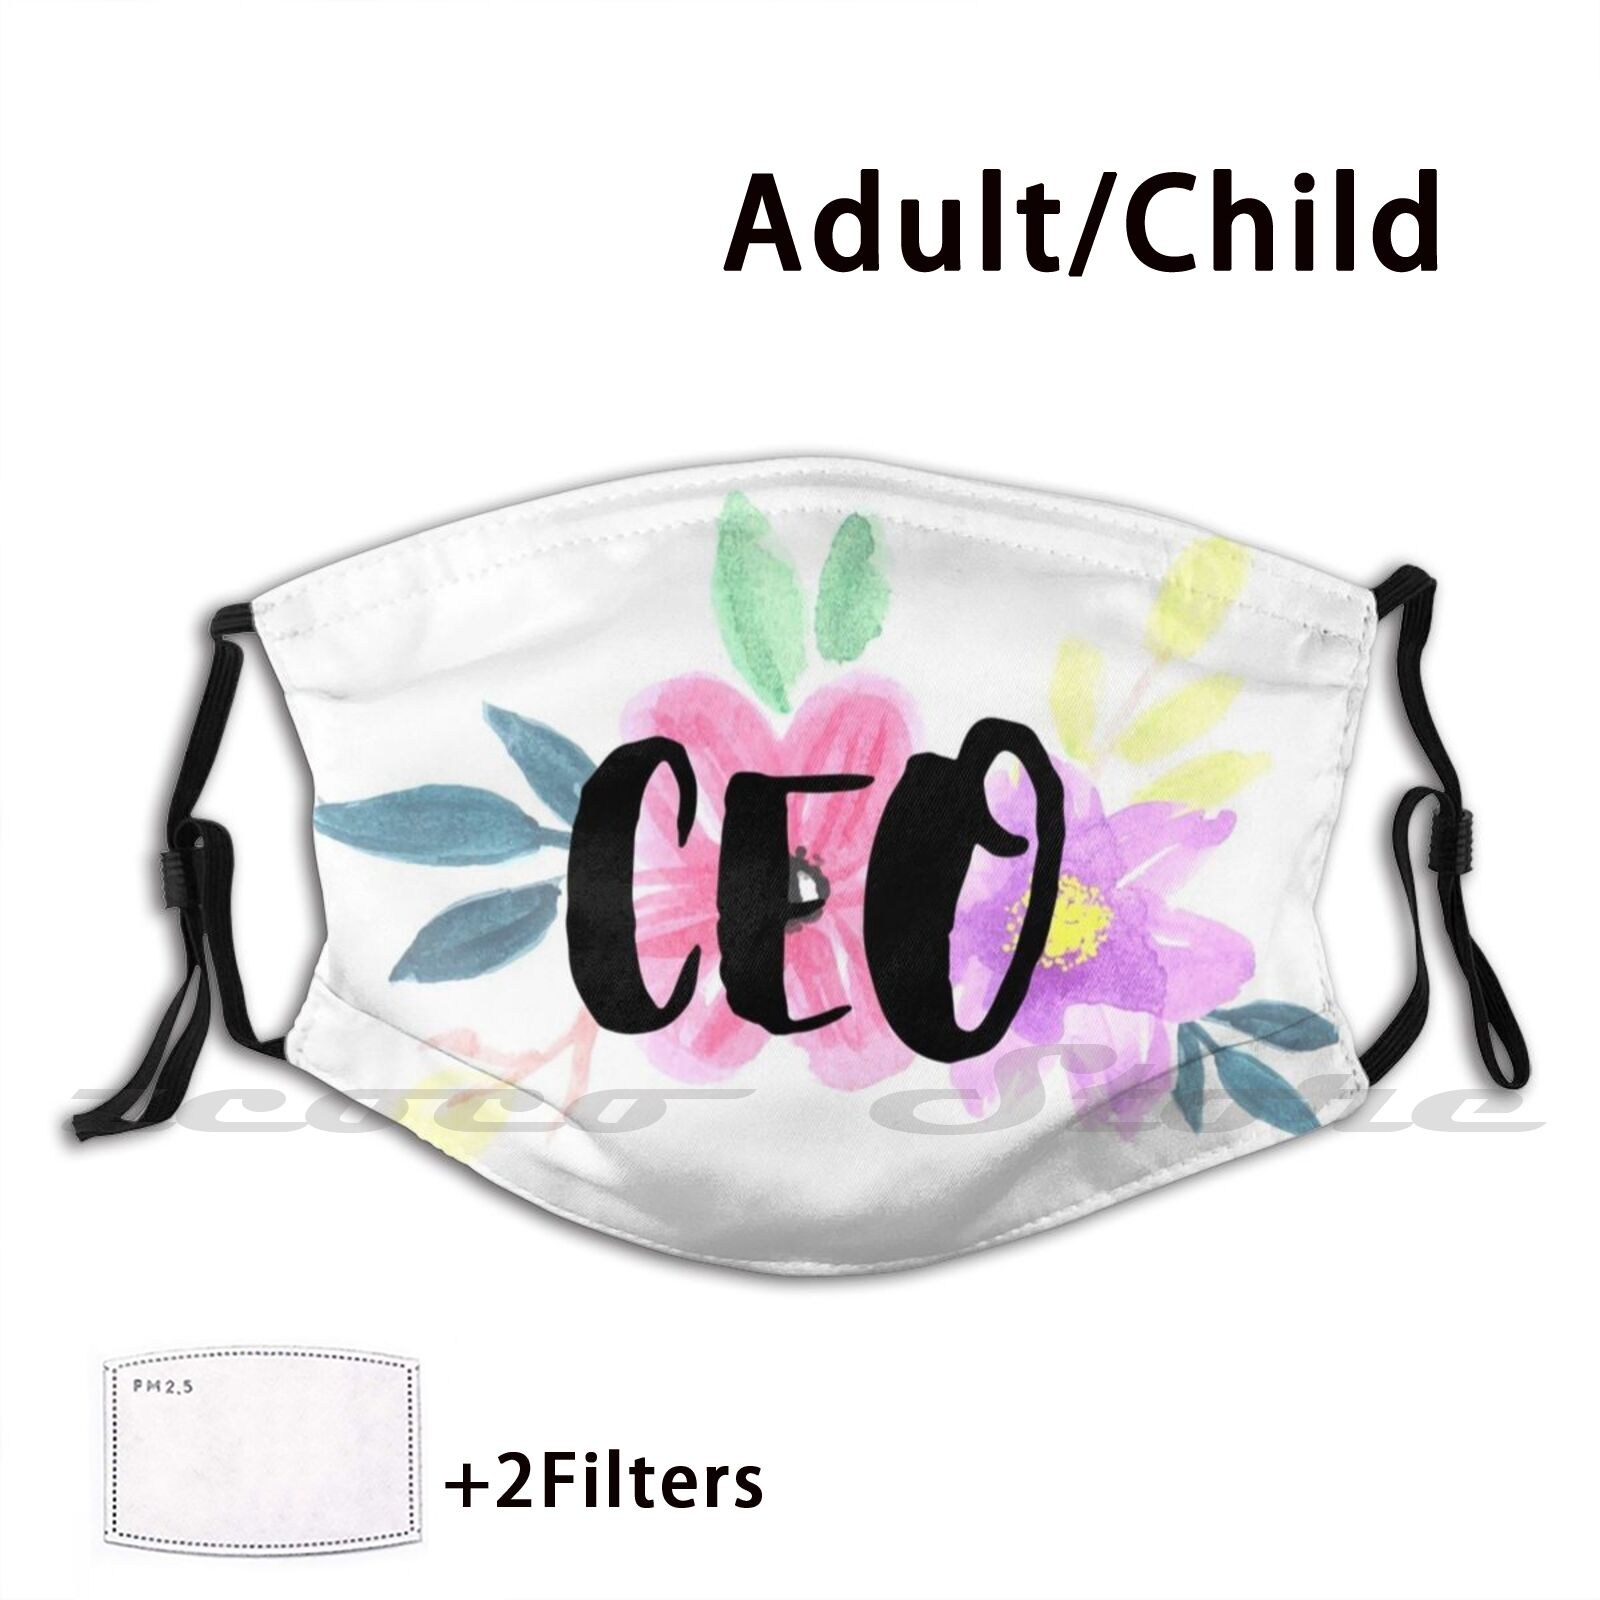 Floral Ceo Mask Cloth Reusable Print Filter Washable Career Future Career College University Student Job Business Business